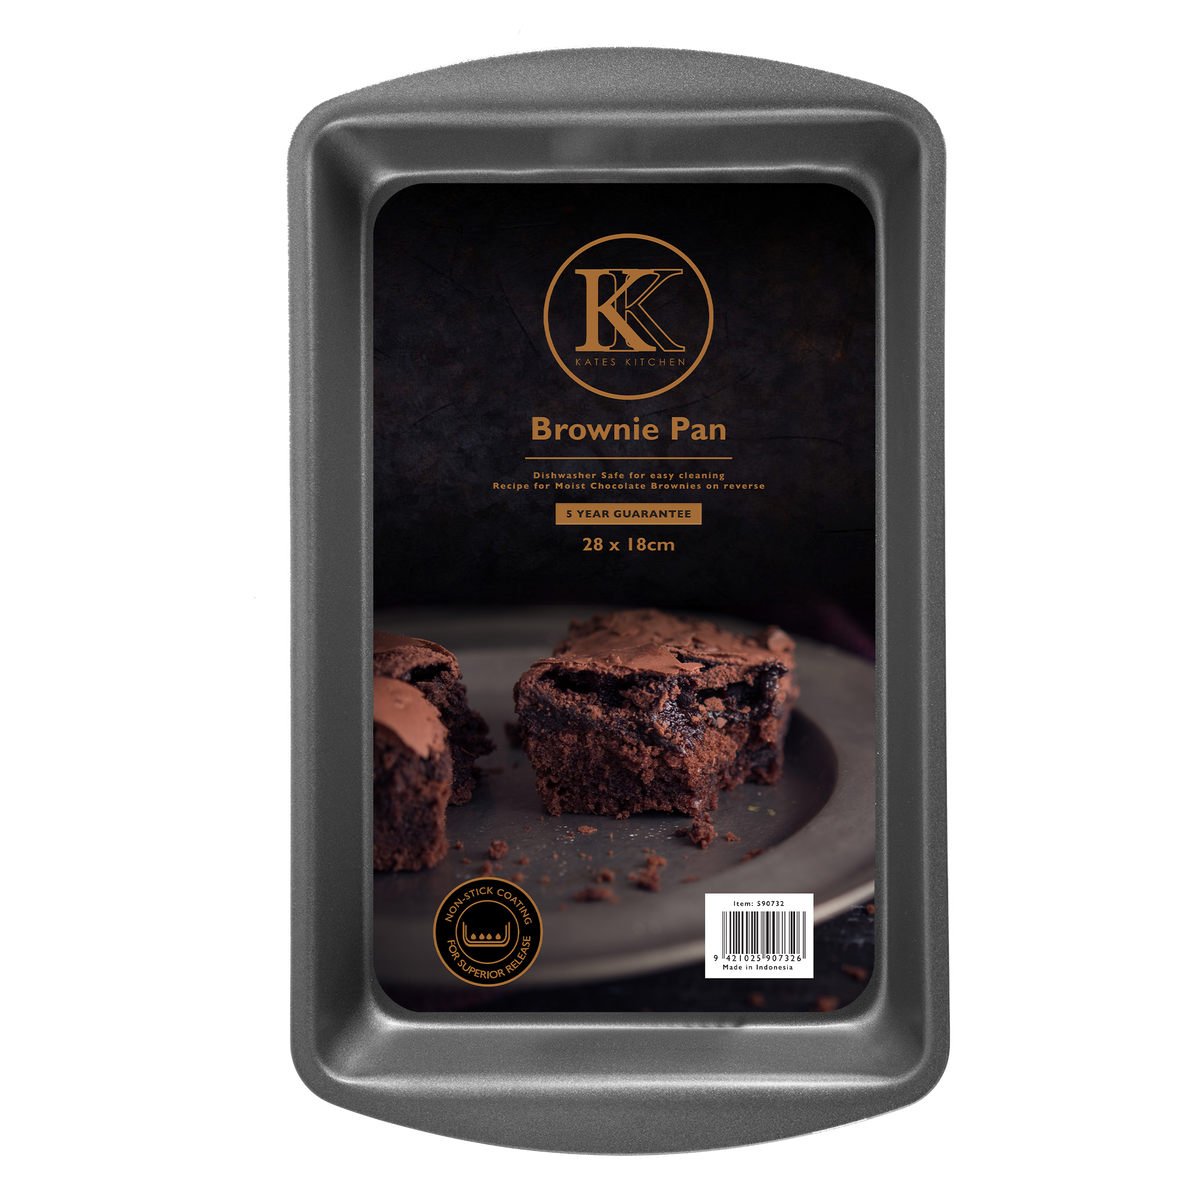 Kates Kitchen Brownie Pan is perfect for creating brownies, slices and biscuits! Non stick design give reliable baking results and years of excellent performance in the kitchen